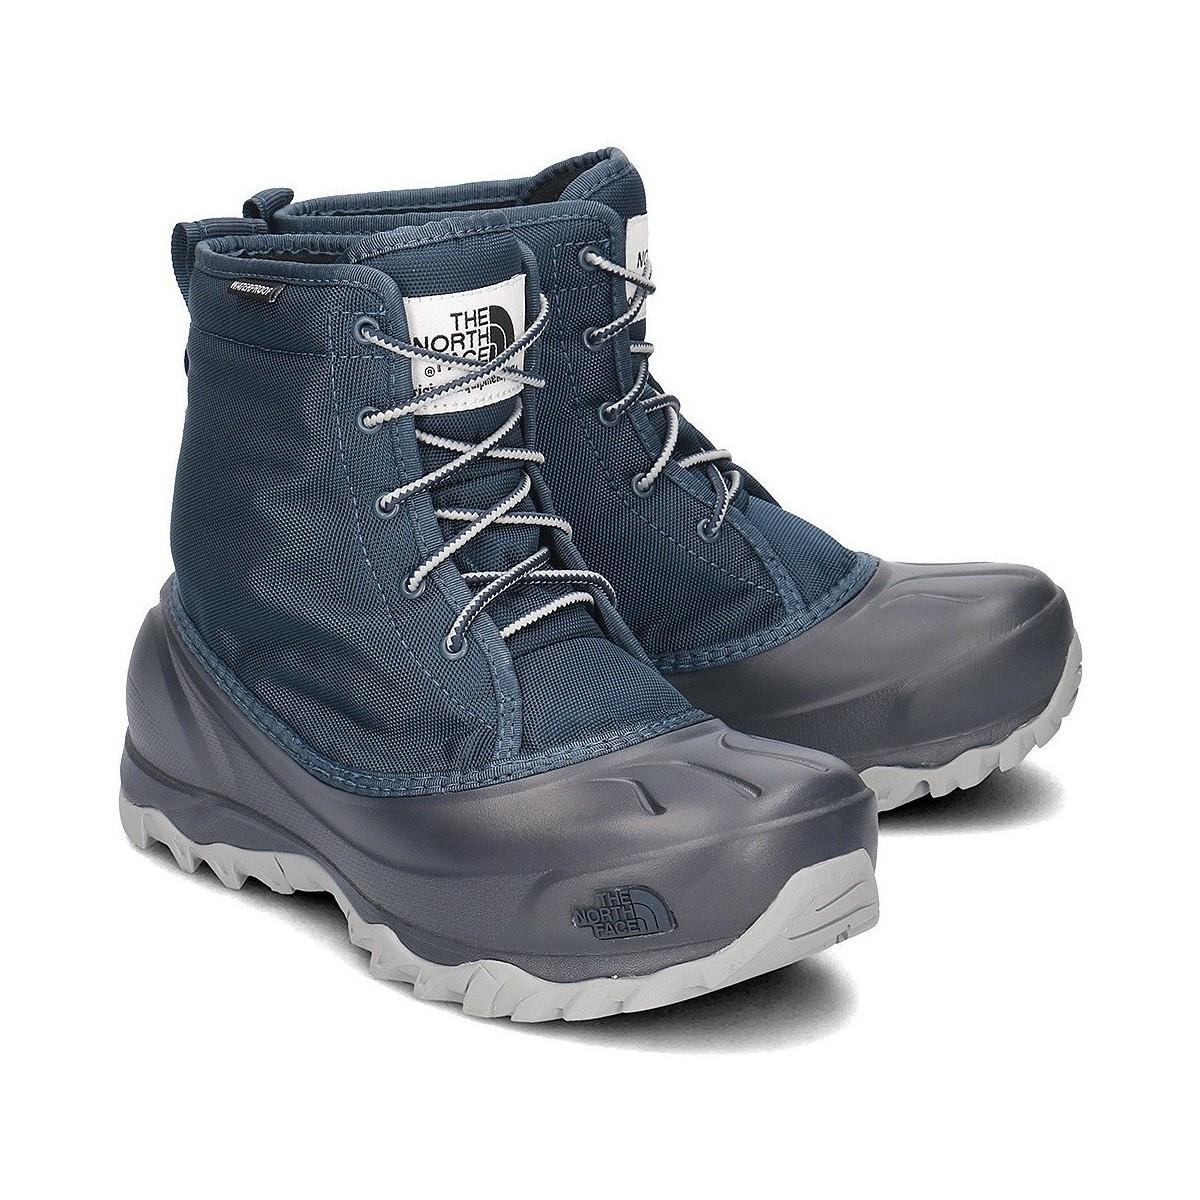 The North Face Tsumoru Women's Snow Boots In Multicolour in Blue - Save 18%